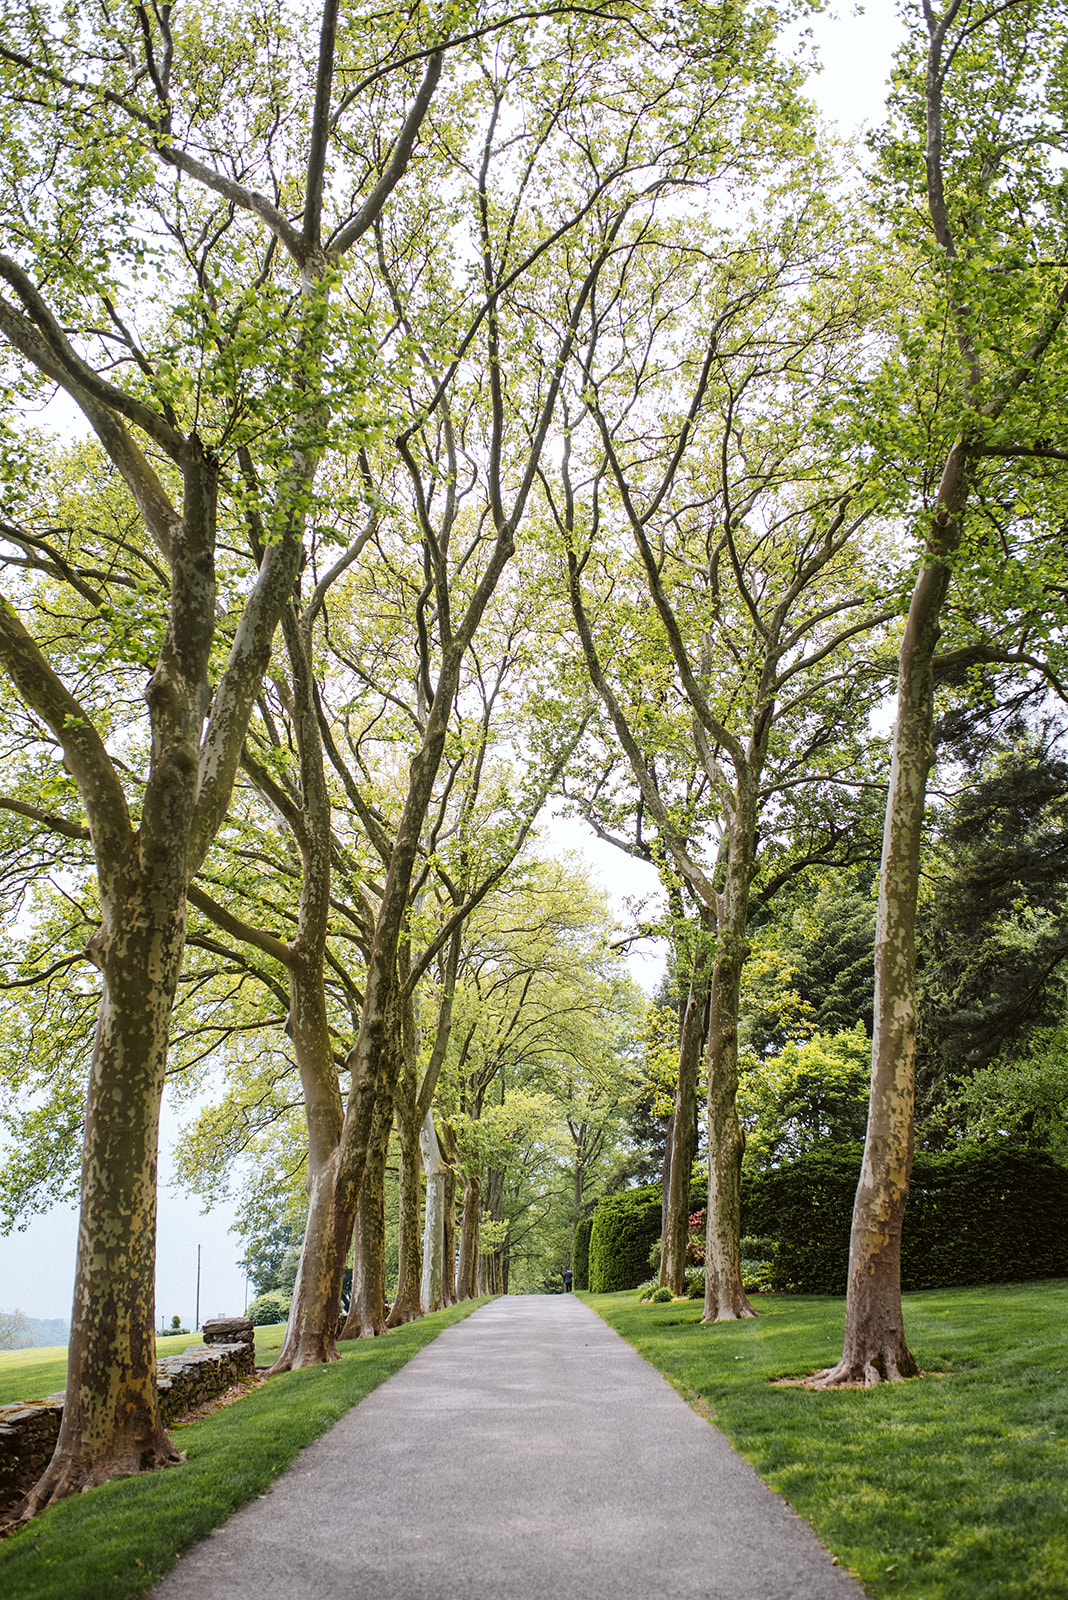 An alley of sycamore trees line the driveway up to the Drumore Estate mansion.